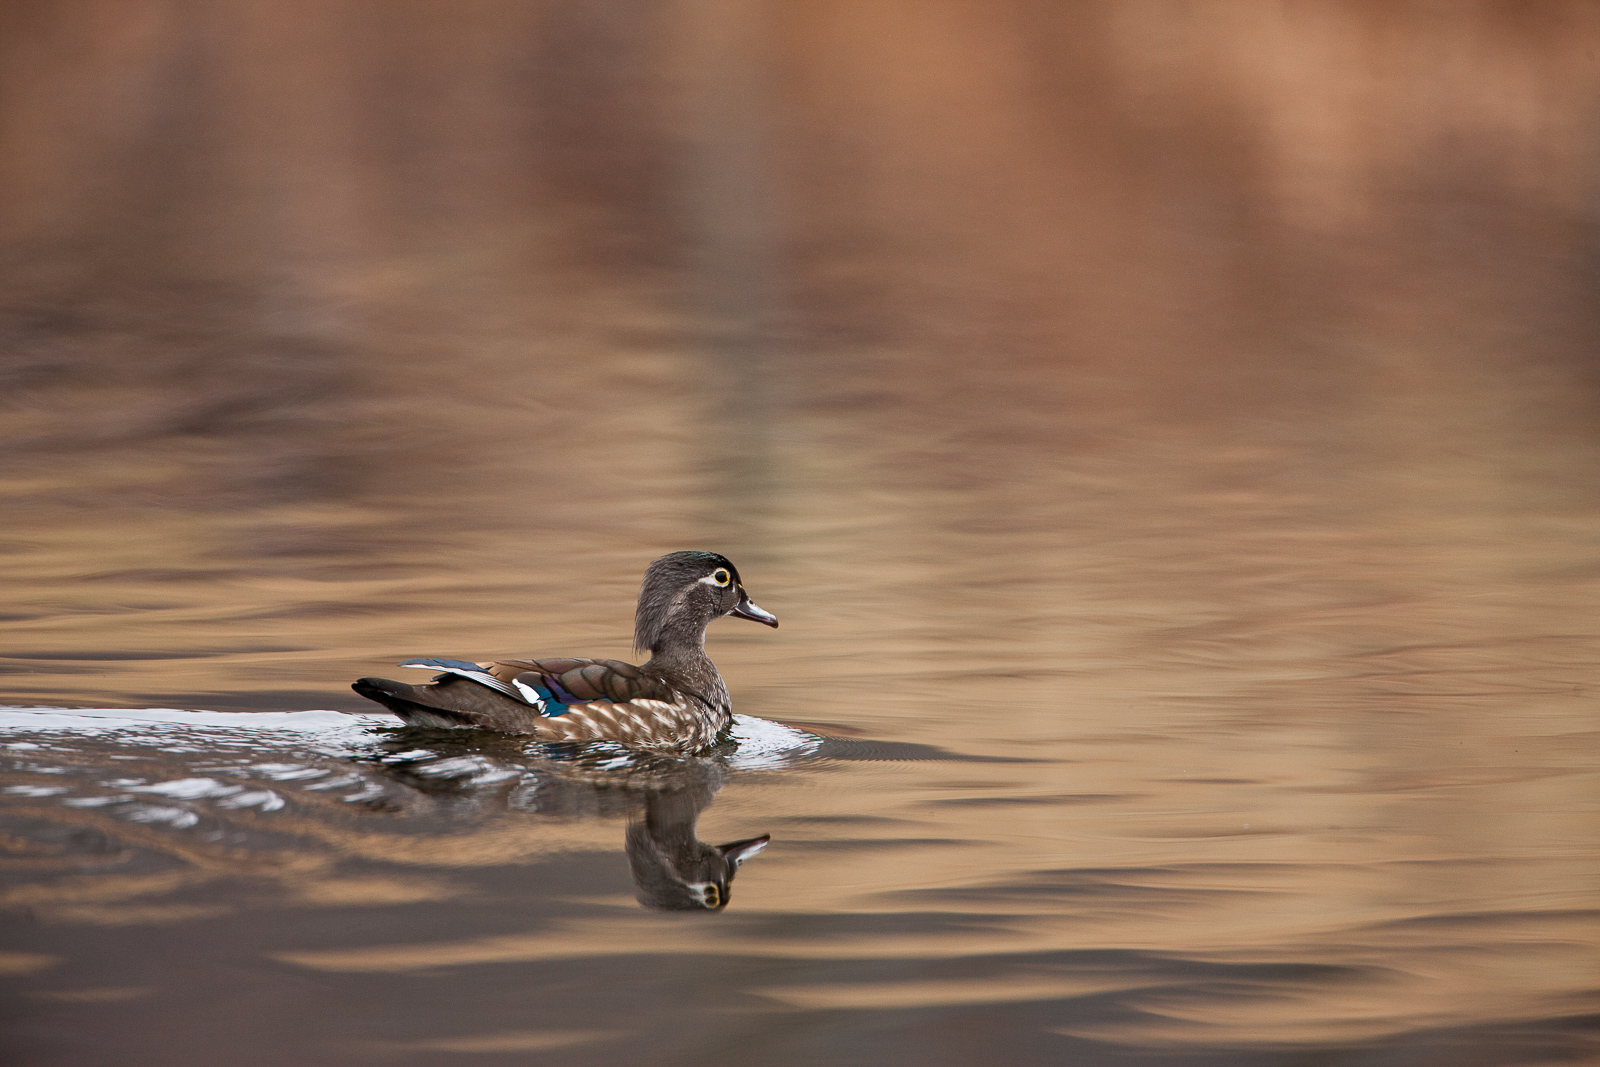 Female Wood Duck cruising the waters presumably escaping male suitors.